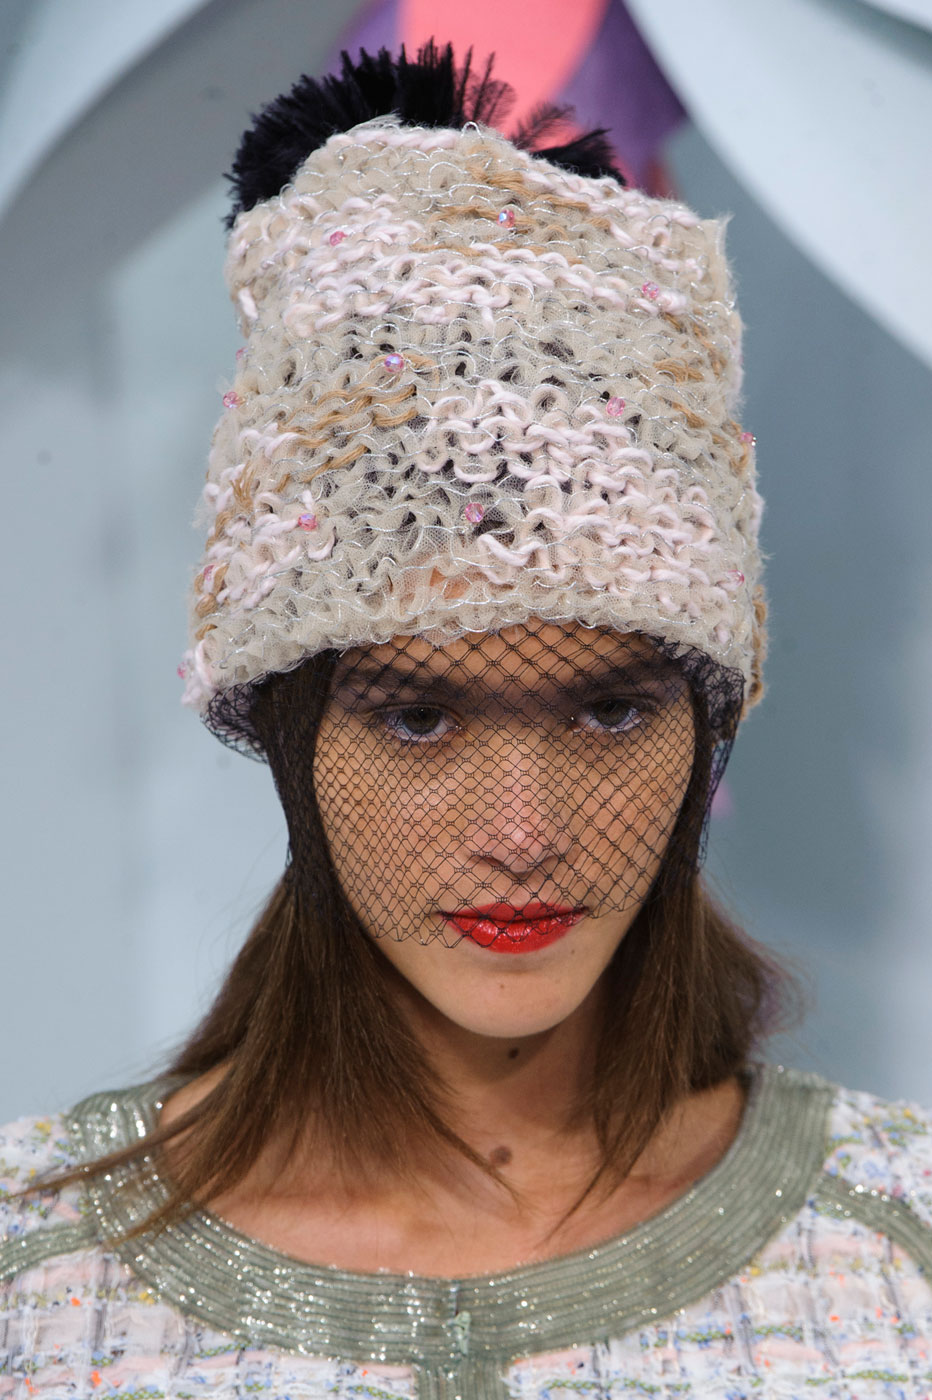 Chanel-fashion-runway-show-close-ups-haute-couture-paris-spring-summer-2015-the-impression-046